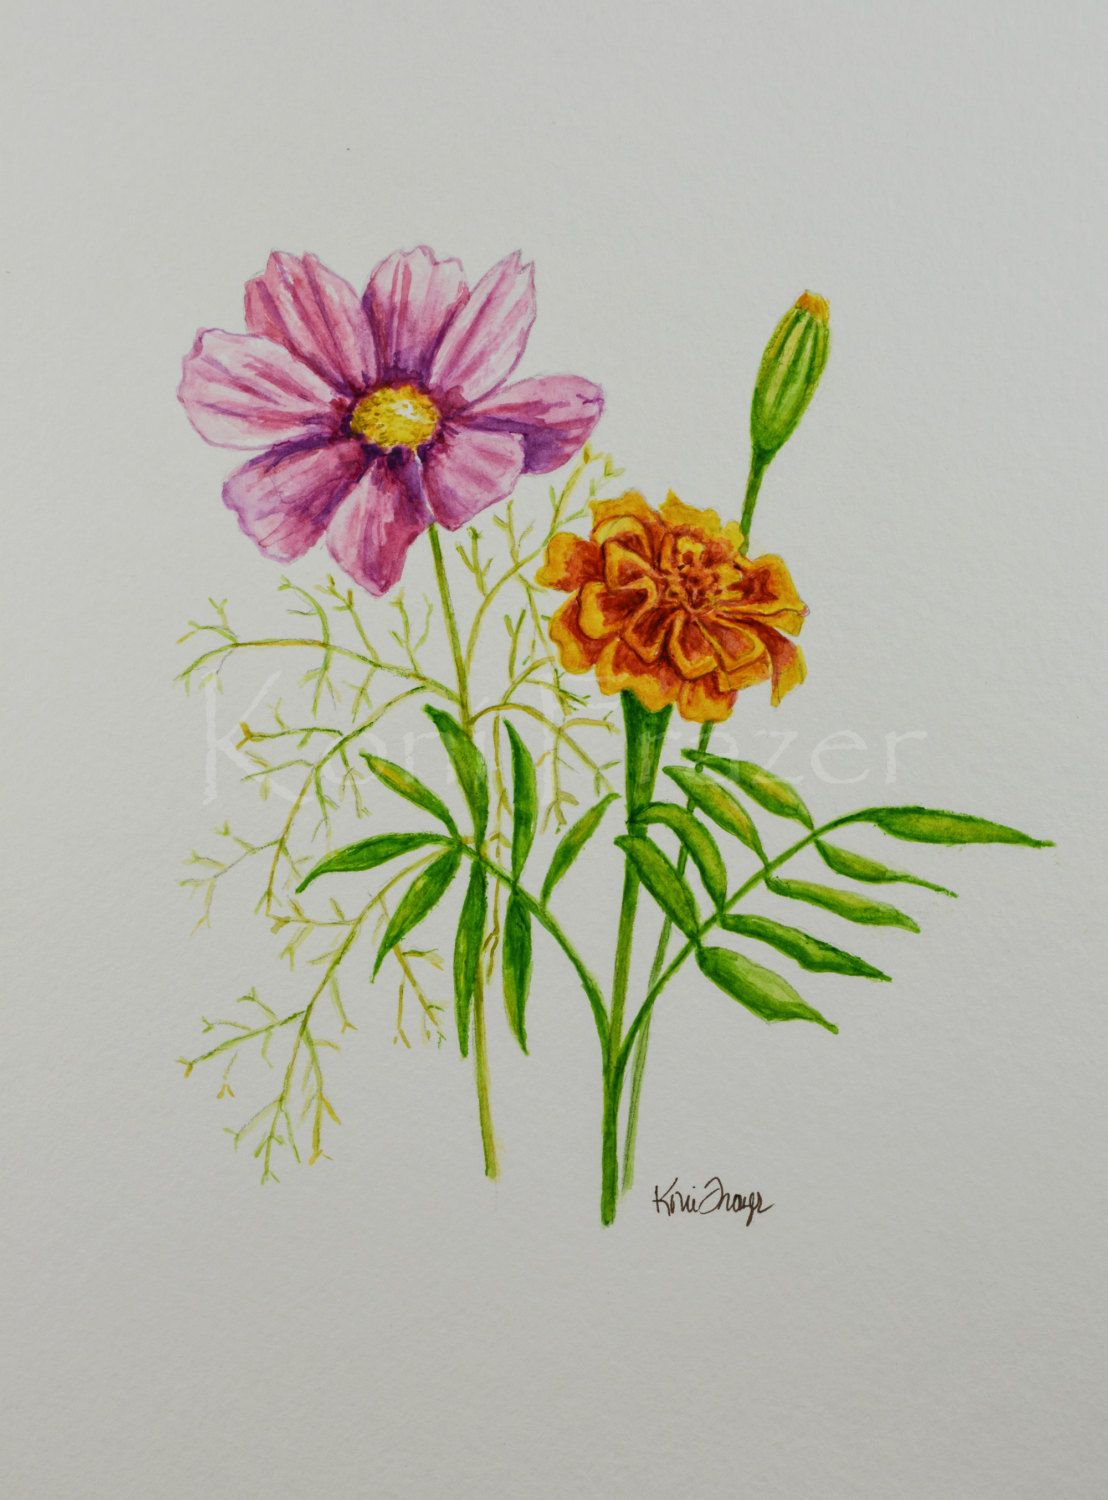 Cosmos and marigold October birthday flower original watercolor painting b